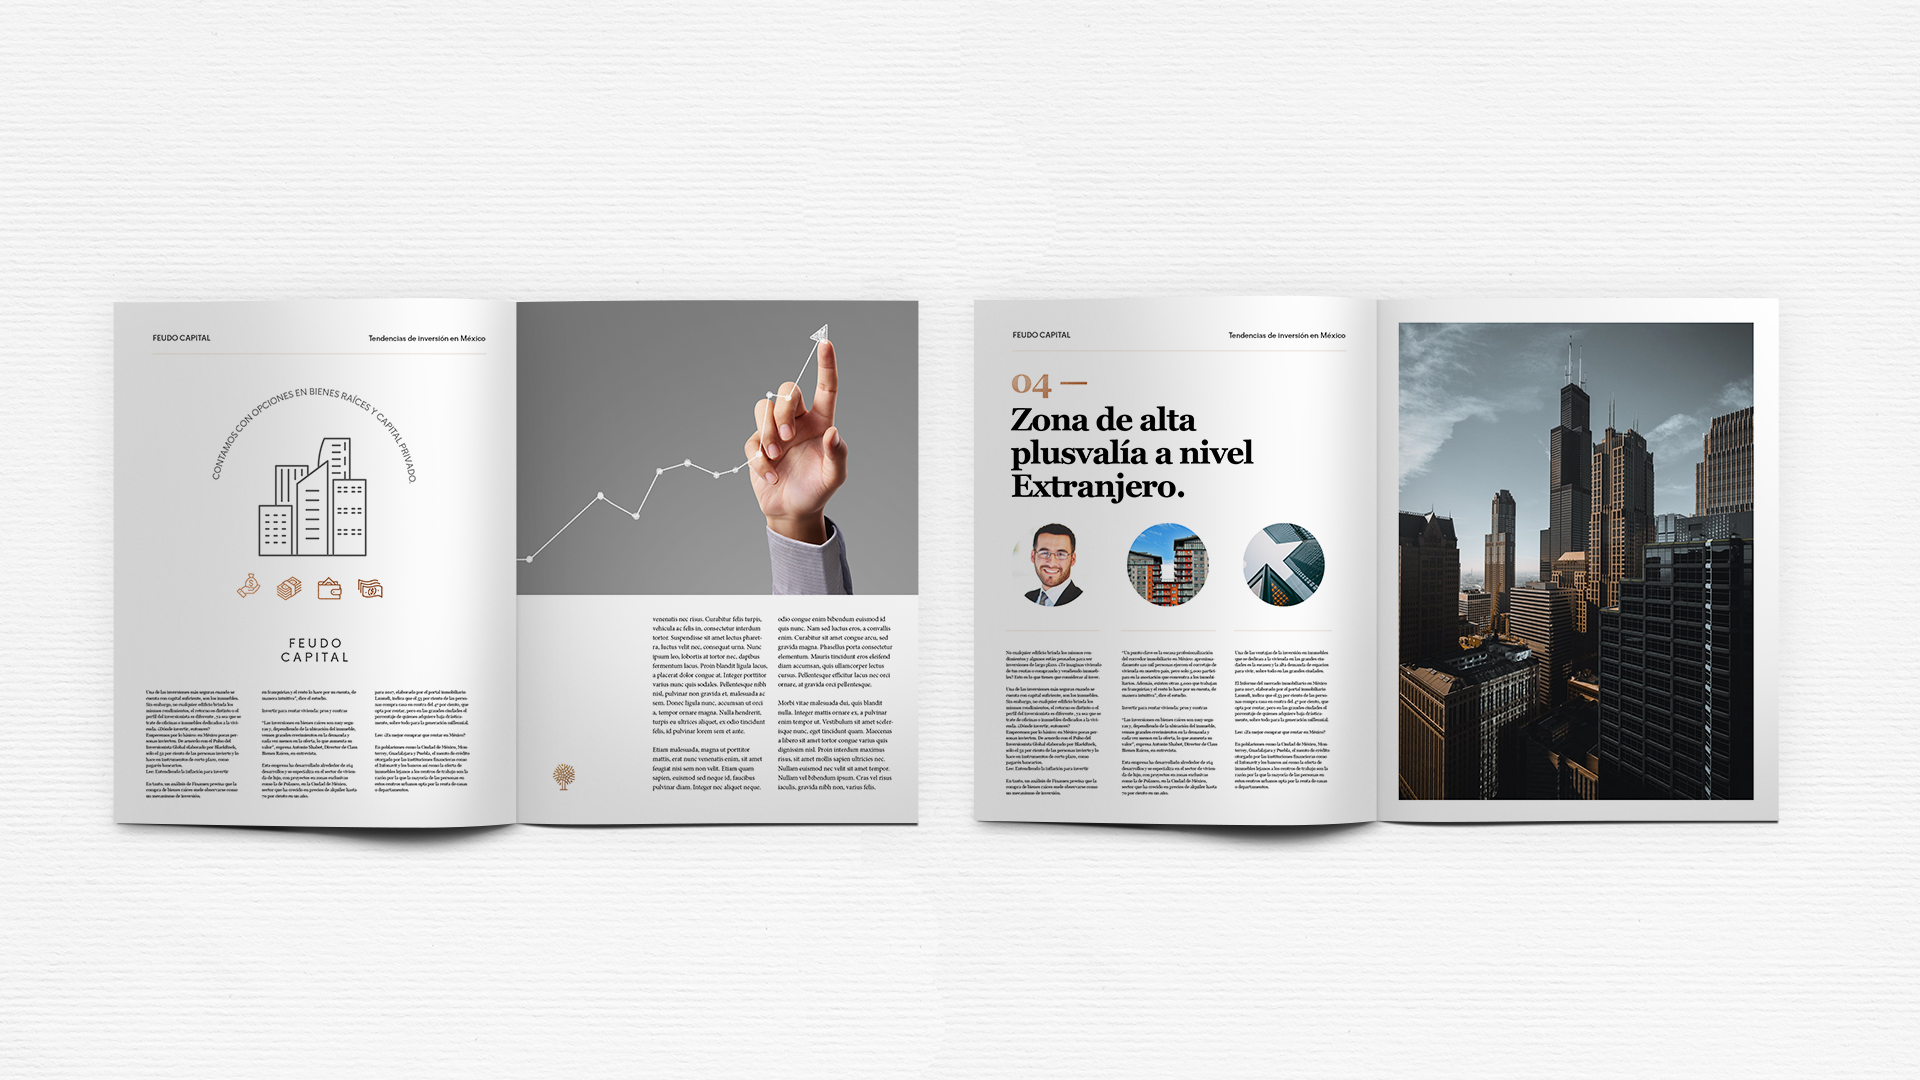 revista-spreads-feudo-capital-yoenpaperland